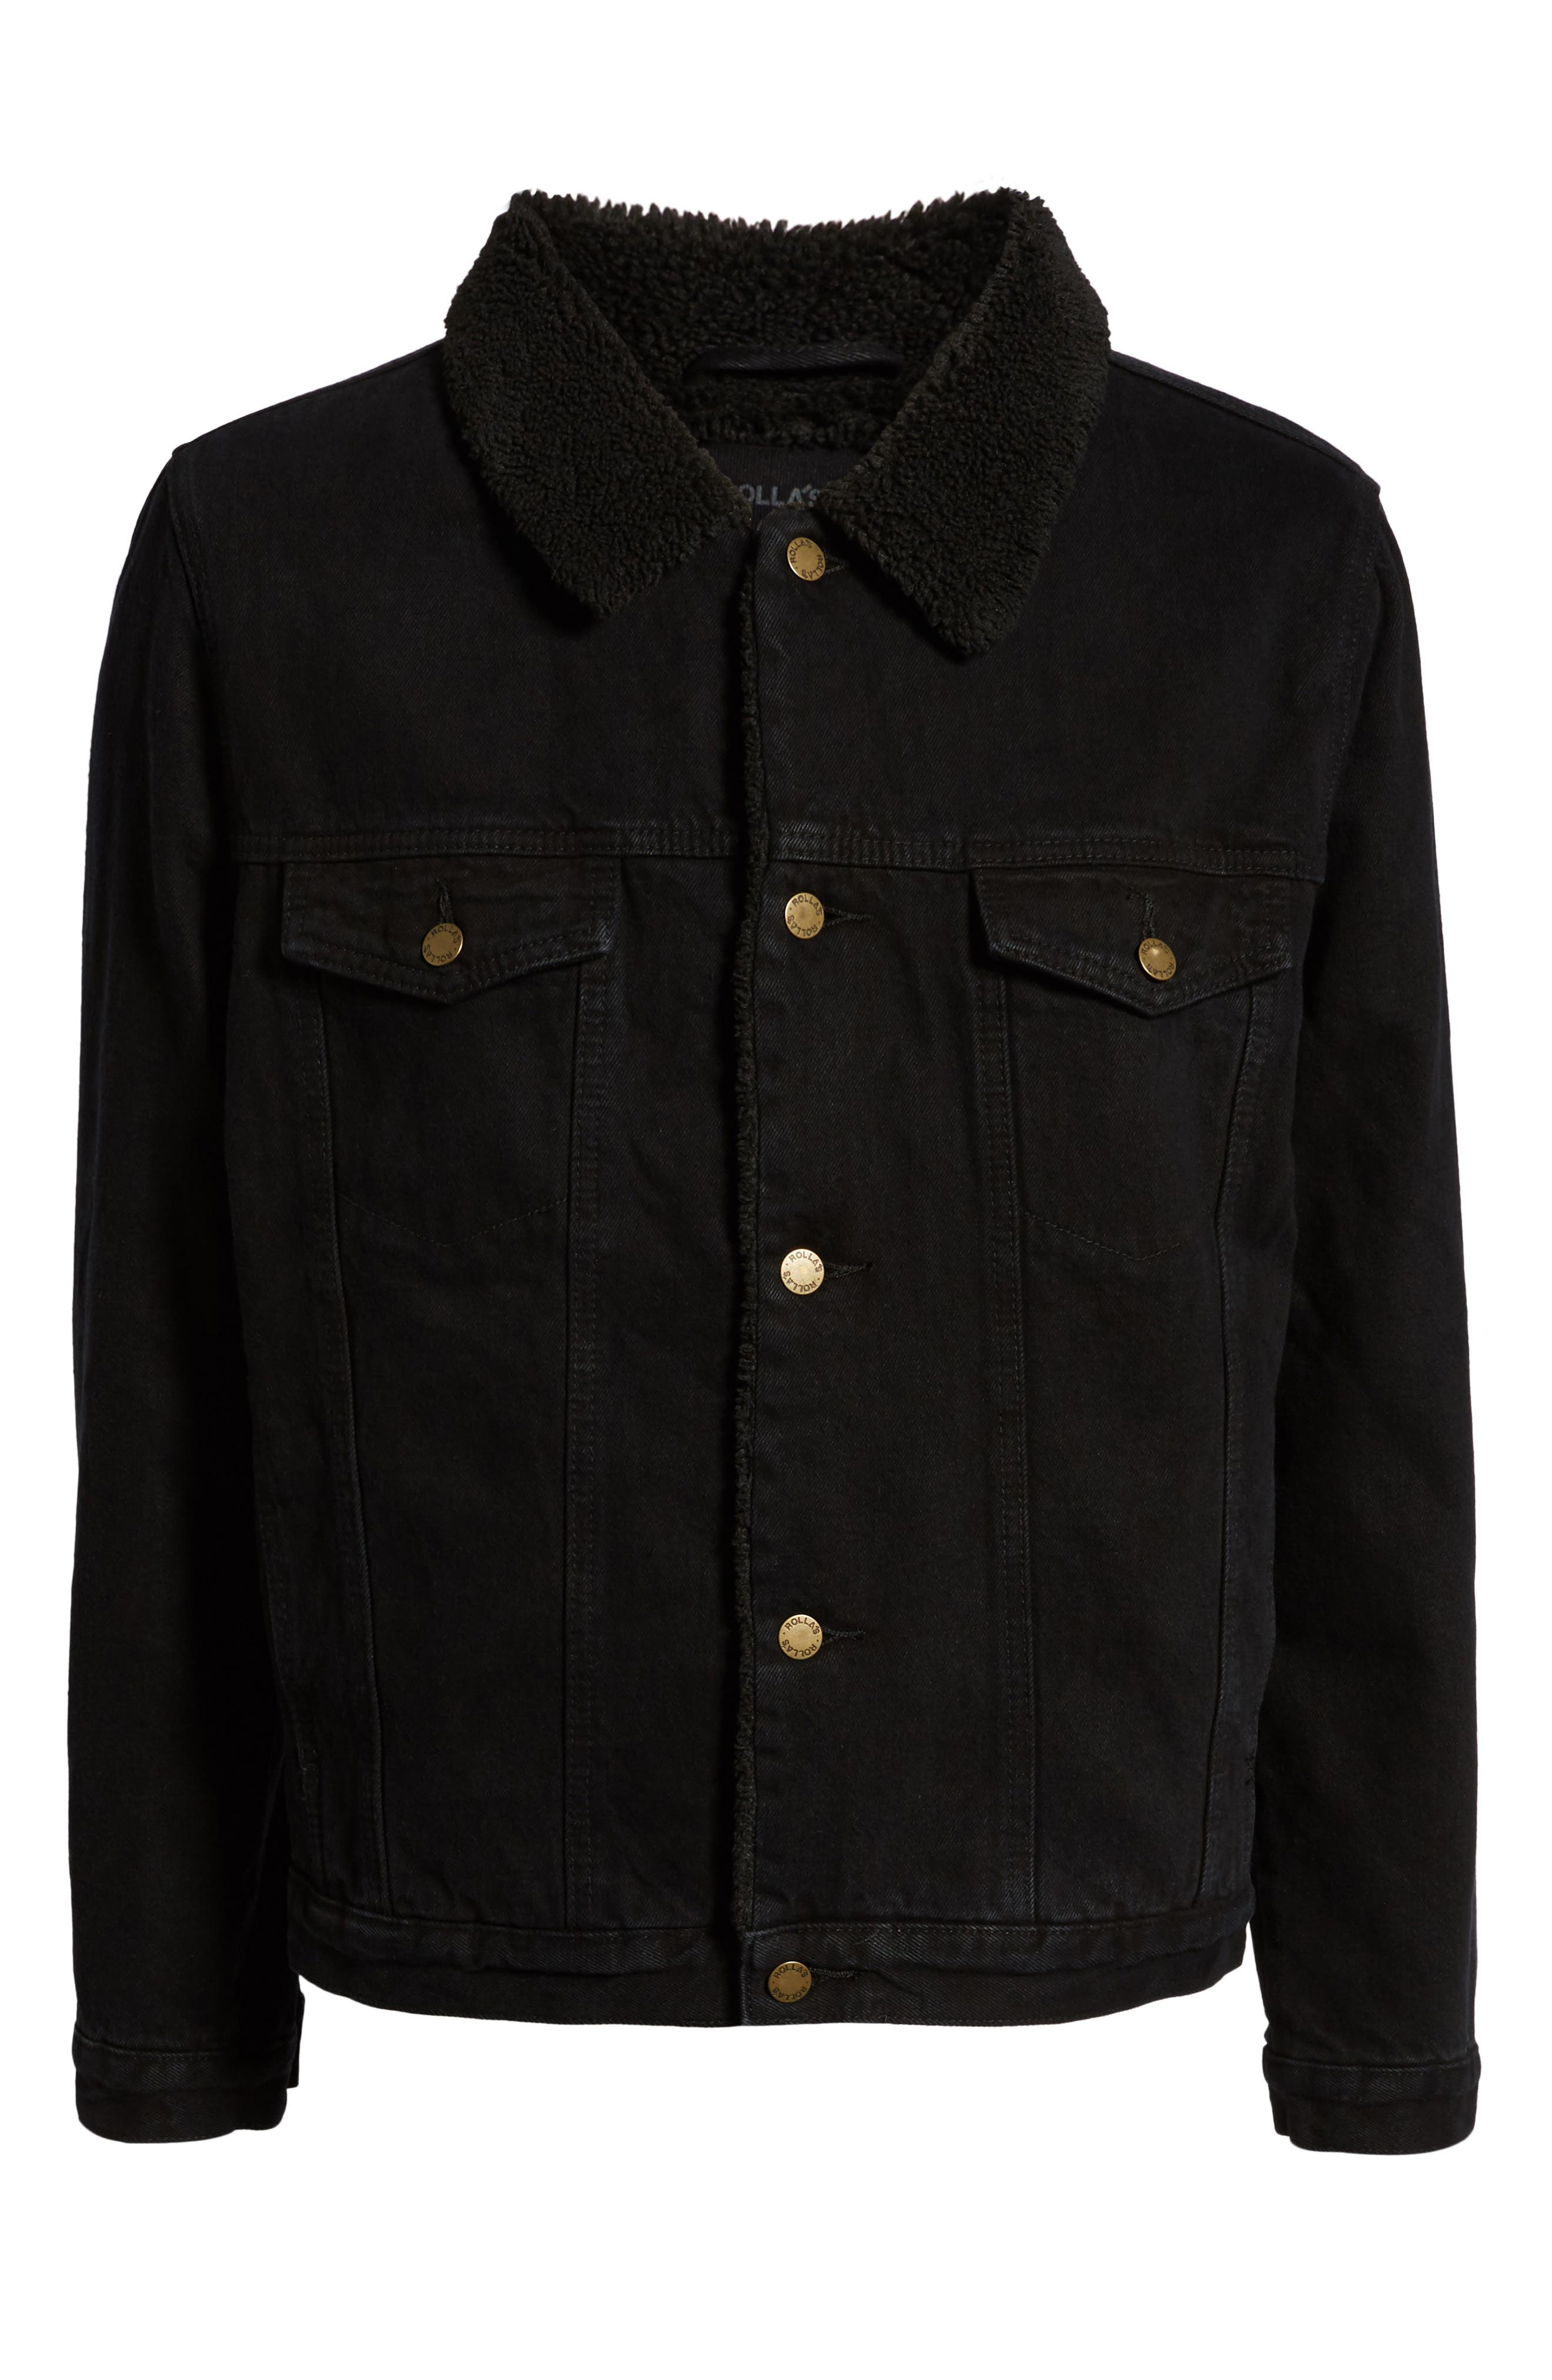 ROLLA'S,                             Lined Denim Jacket,                             Alternate thumbnail 6, color,                             002